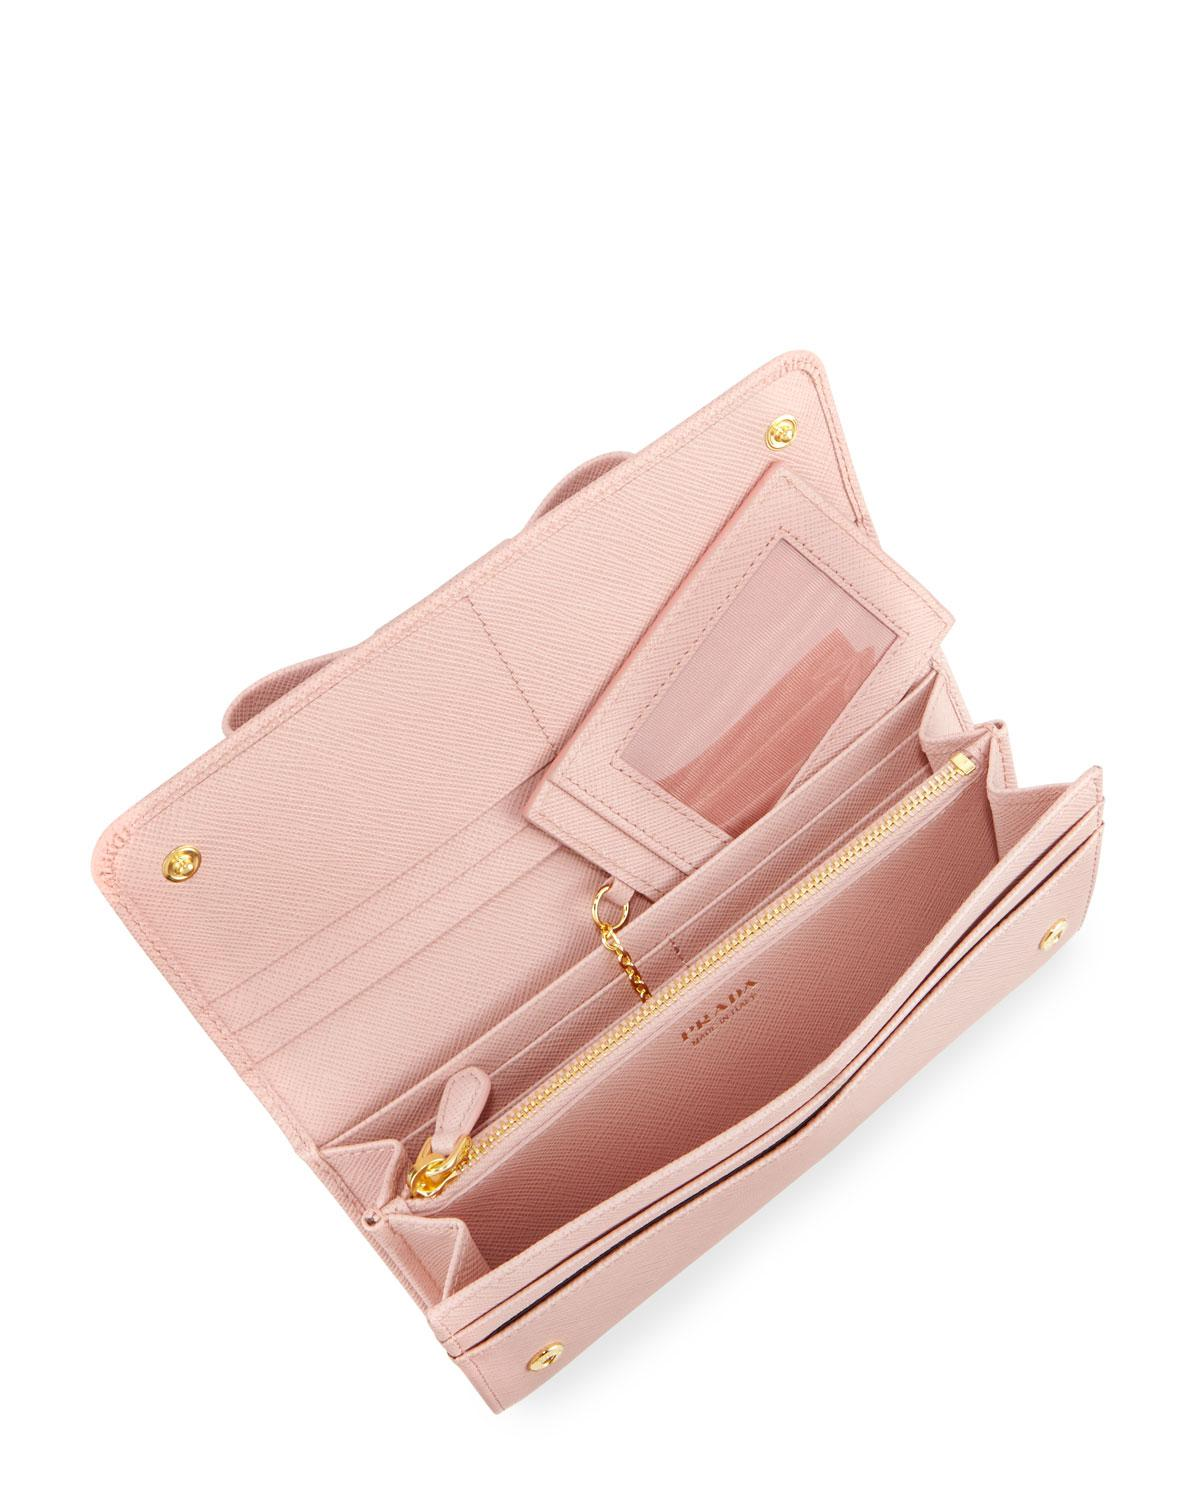 50f0addb2a3e ... france prada saffiano continental flap wallet with bow in pink lyst  5edc8 c17d4 ...